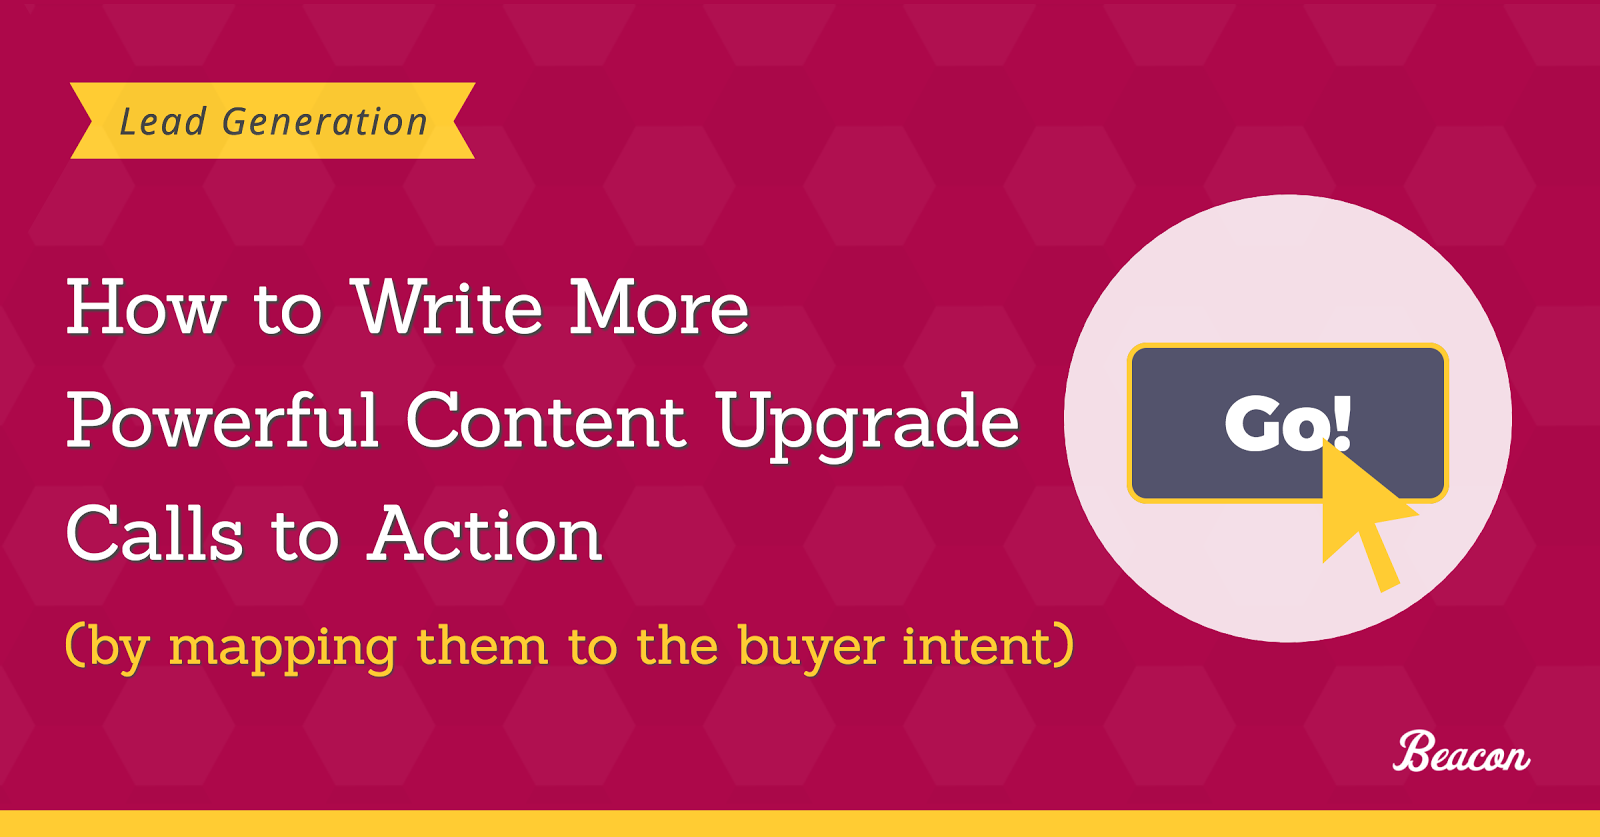 Content upgrade calls to action